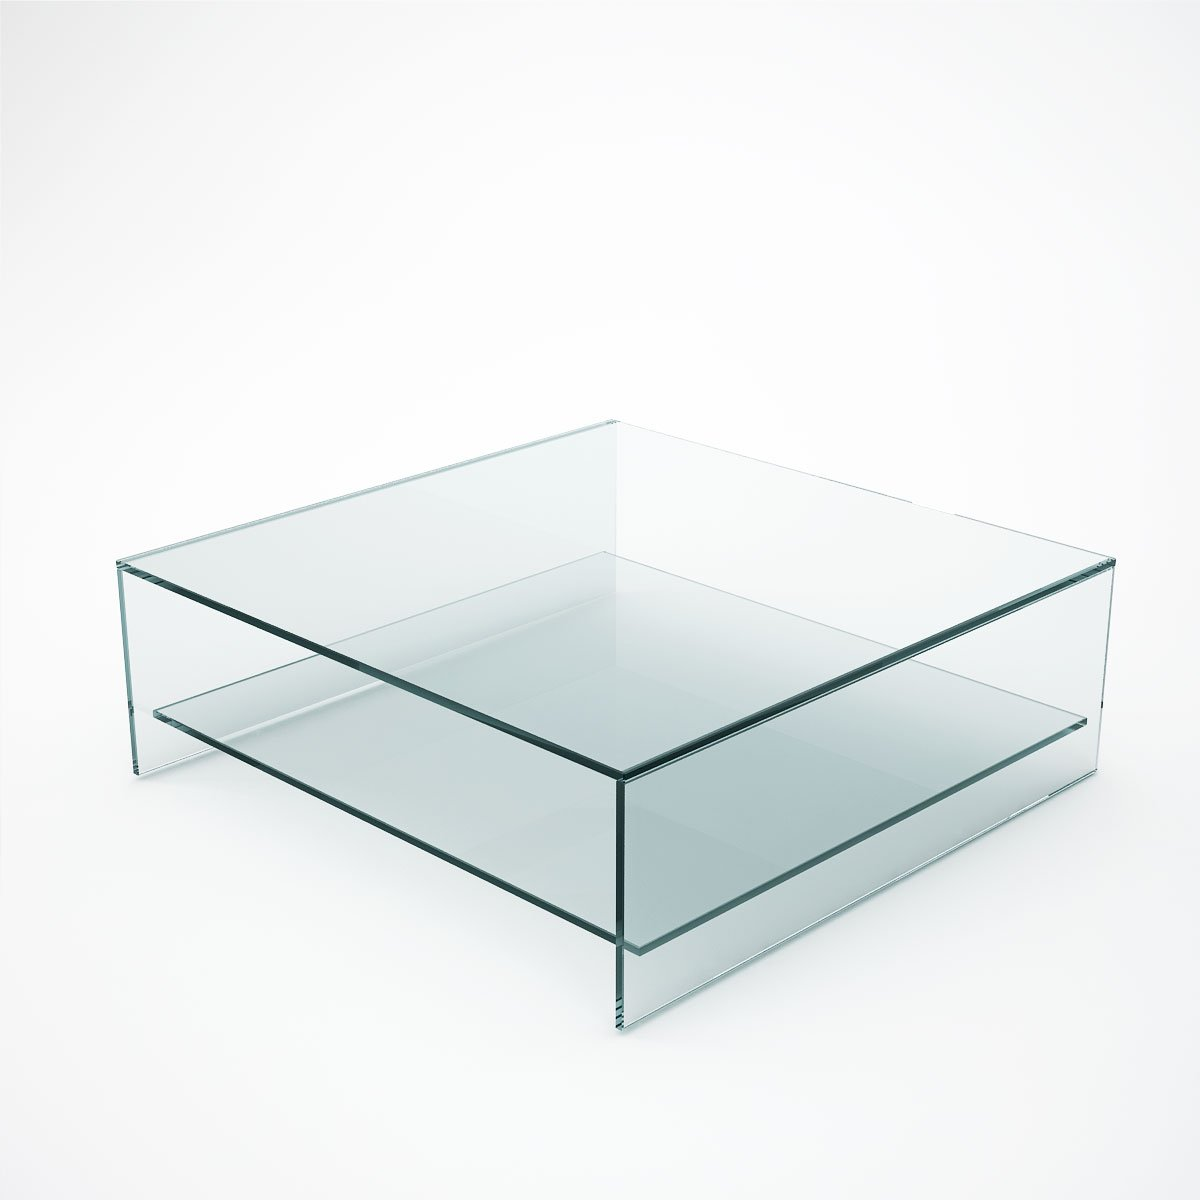 Judd square glass coffee table with shelf klarity glass furniture Coffee table with shelf